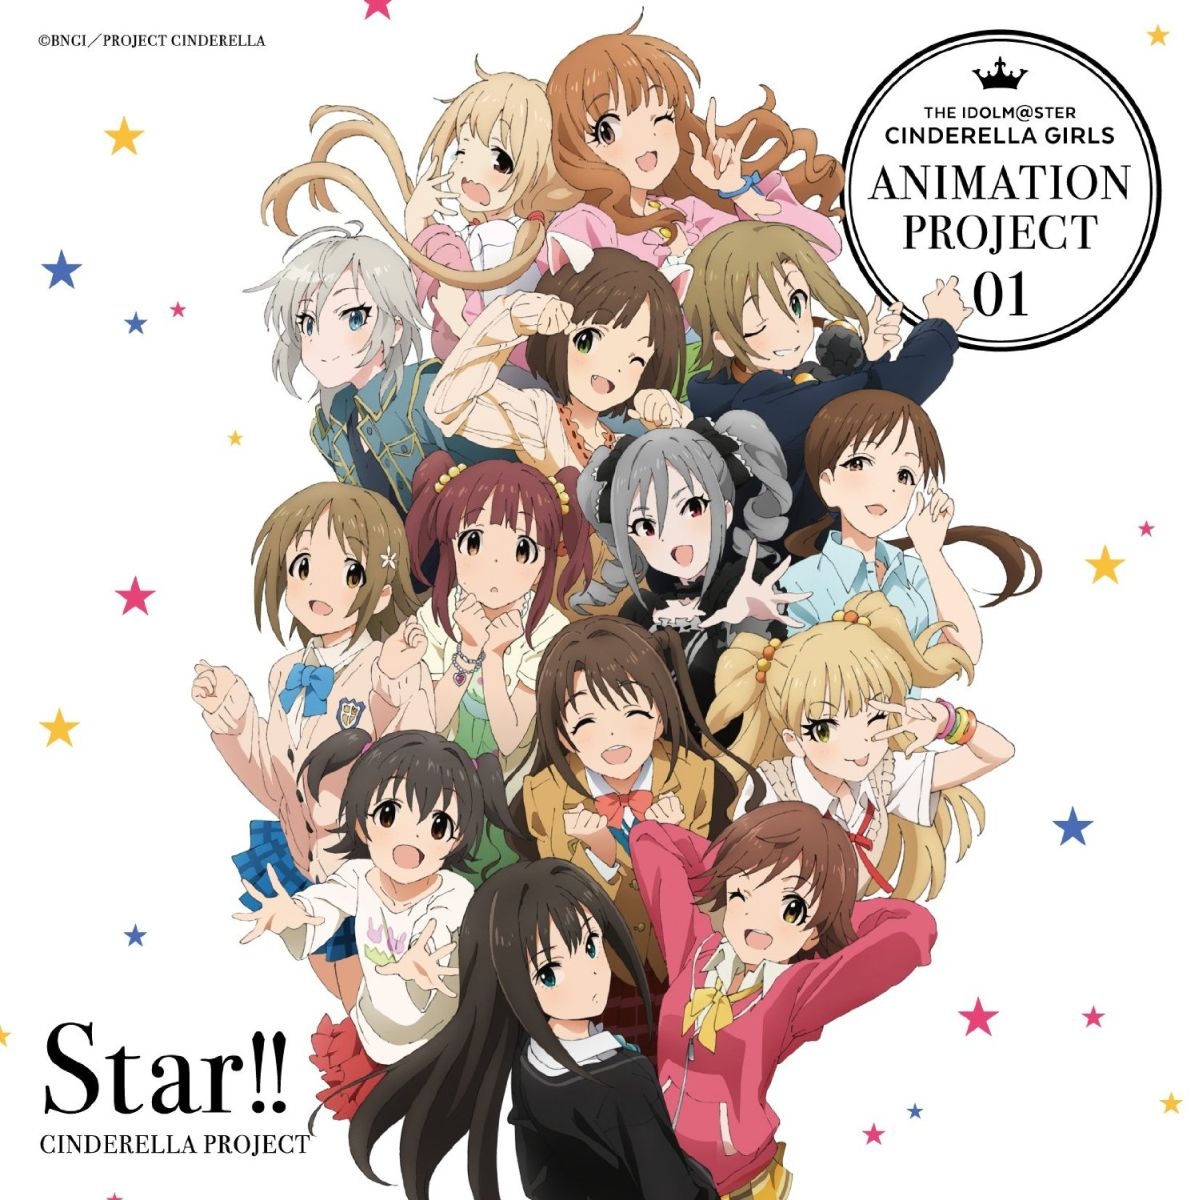 THE IDOLM@STER CINDERELLA GIRLS ANIMATION PROJECT 01 Star!!画像